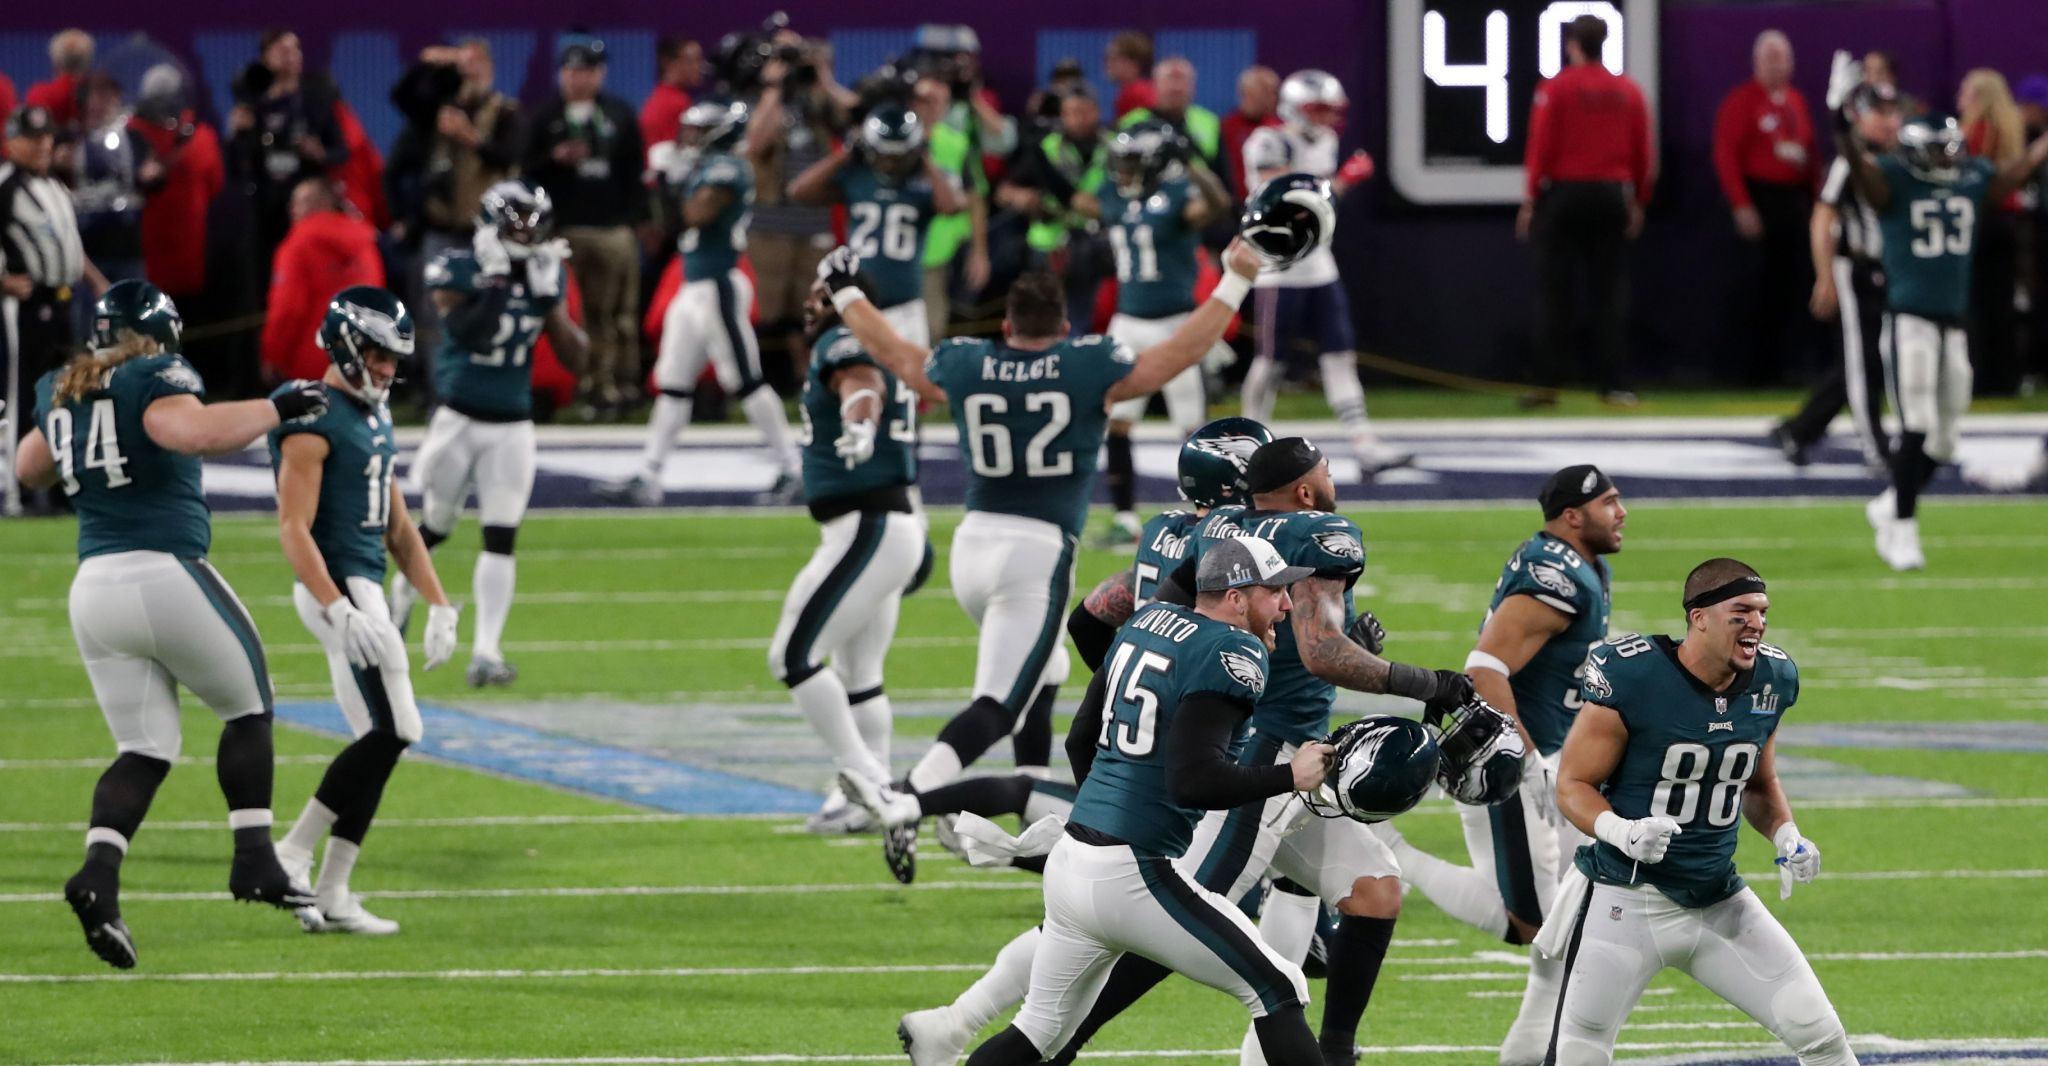 Eagles Topple Patriots To Earn 1st Super Bowl Title